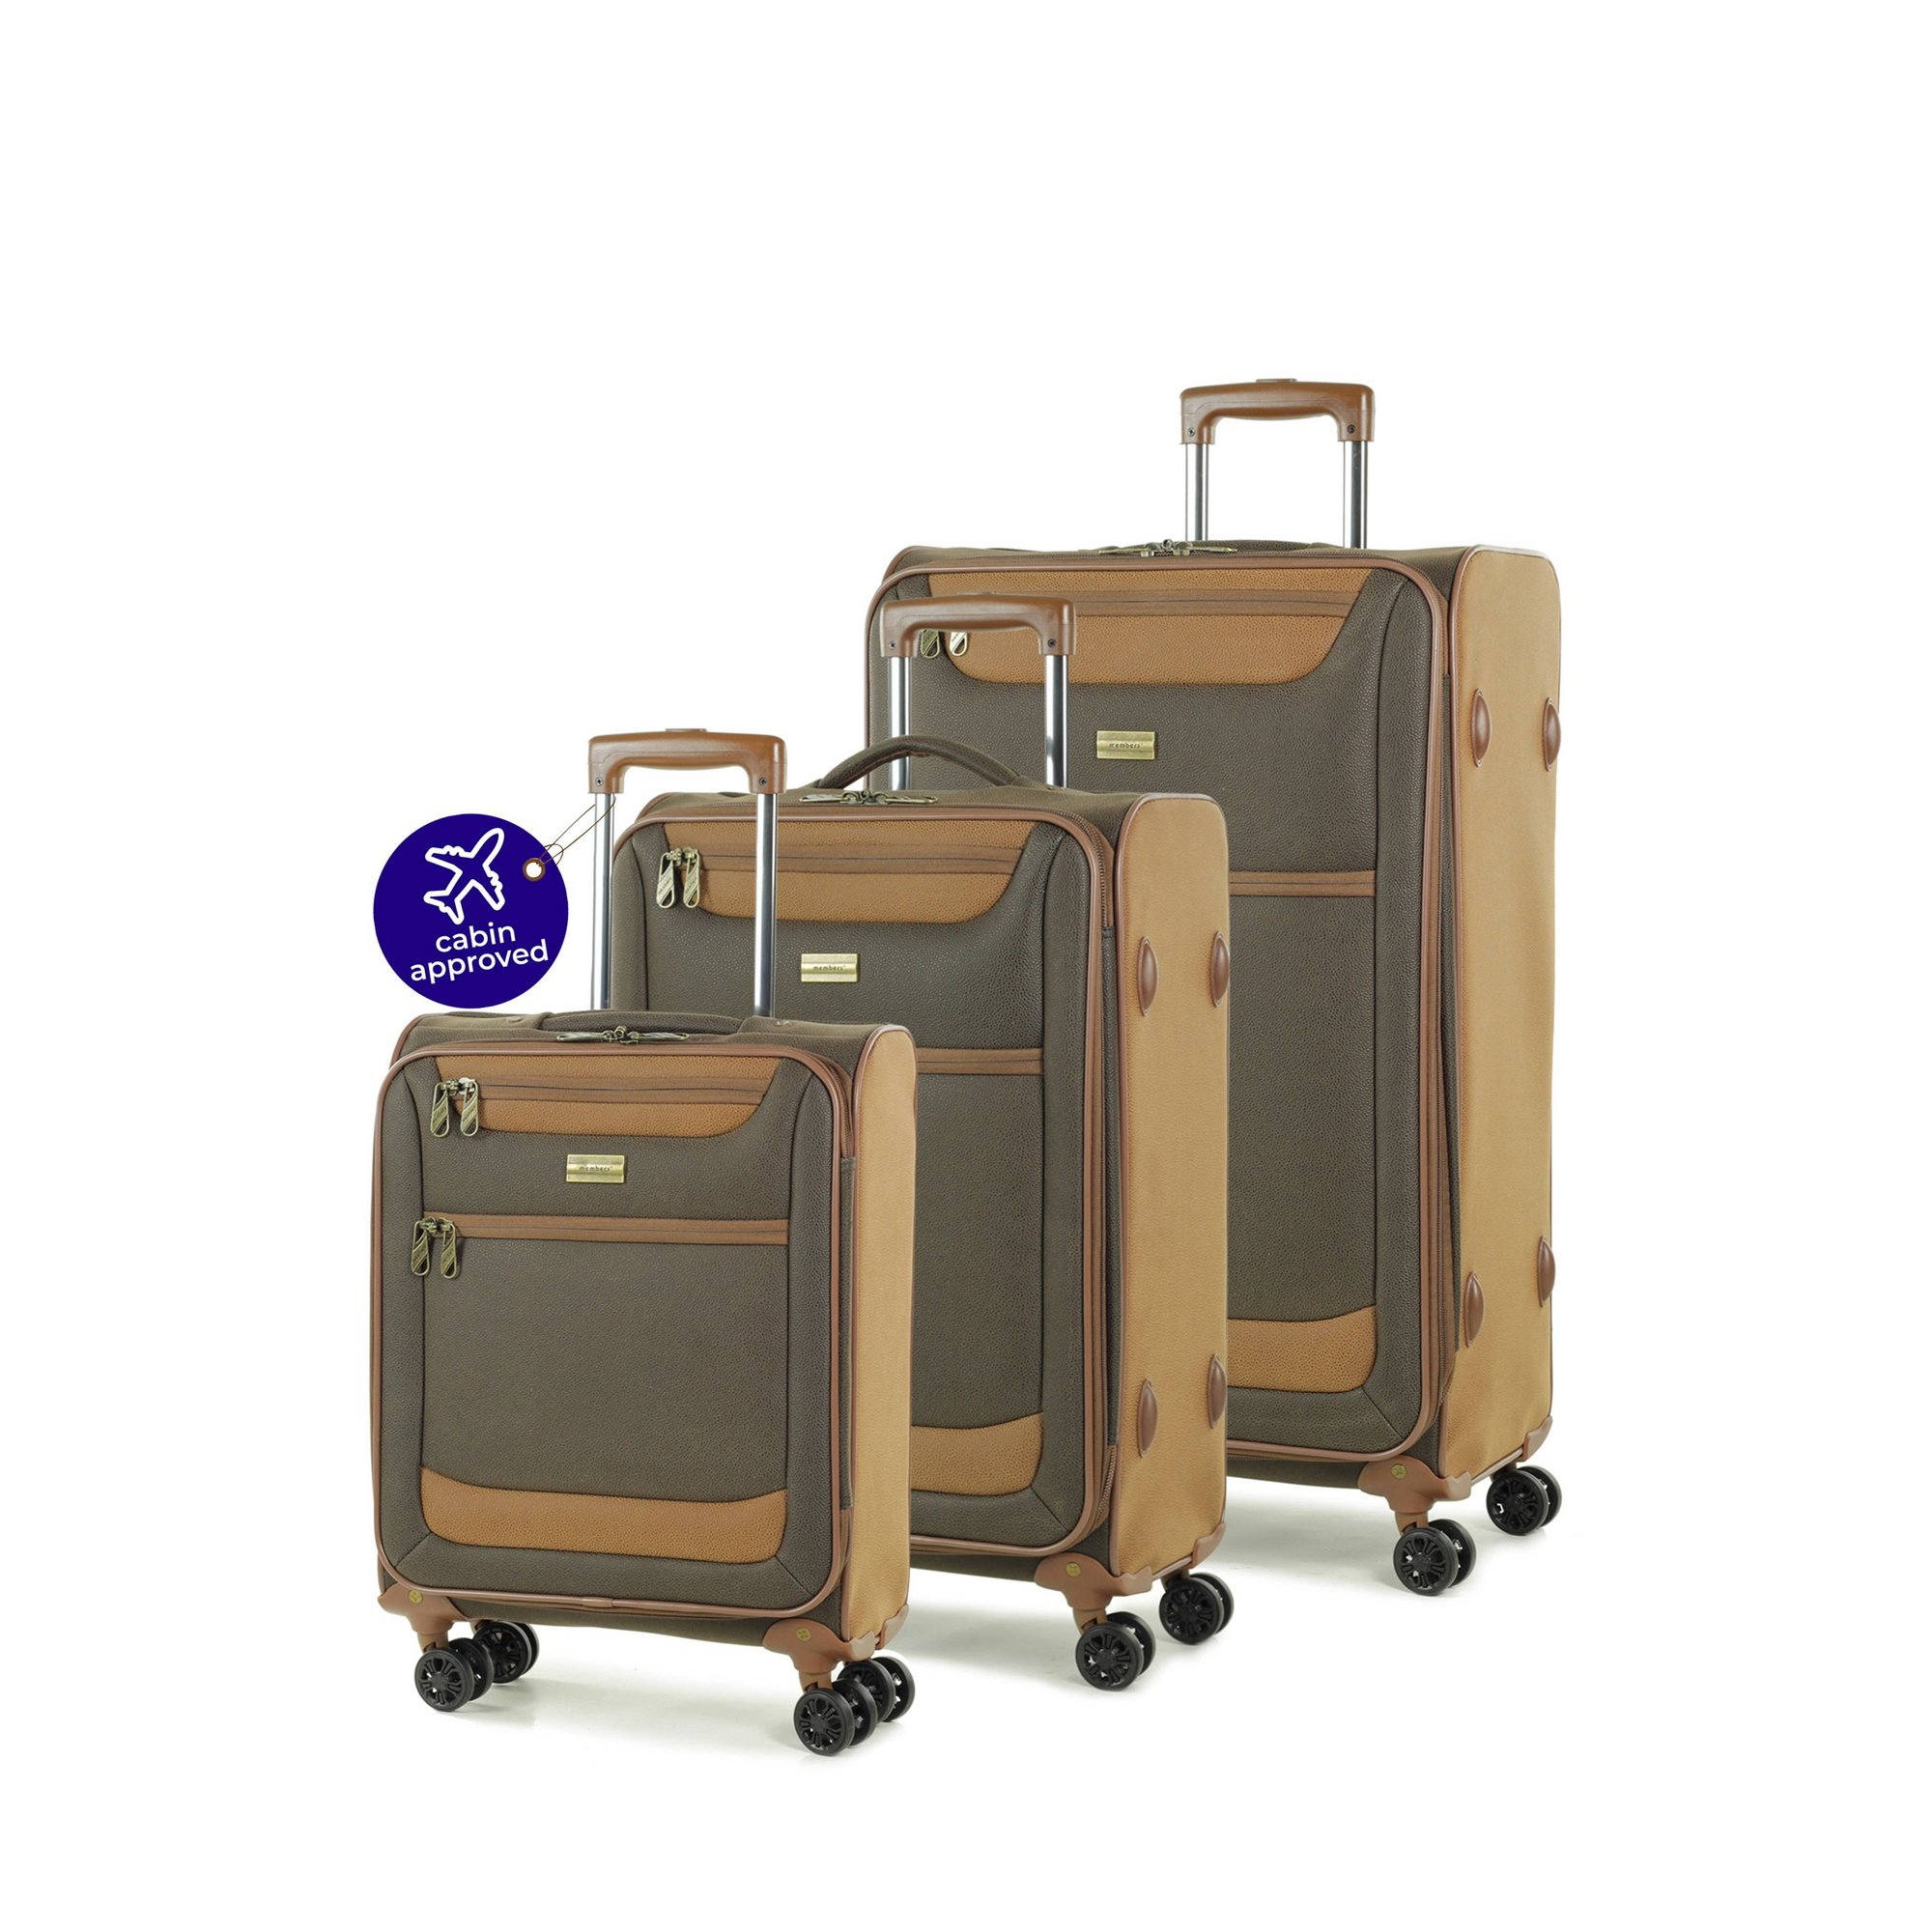 Image of Members by Rock - Boston 3 Piece Luggage Set